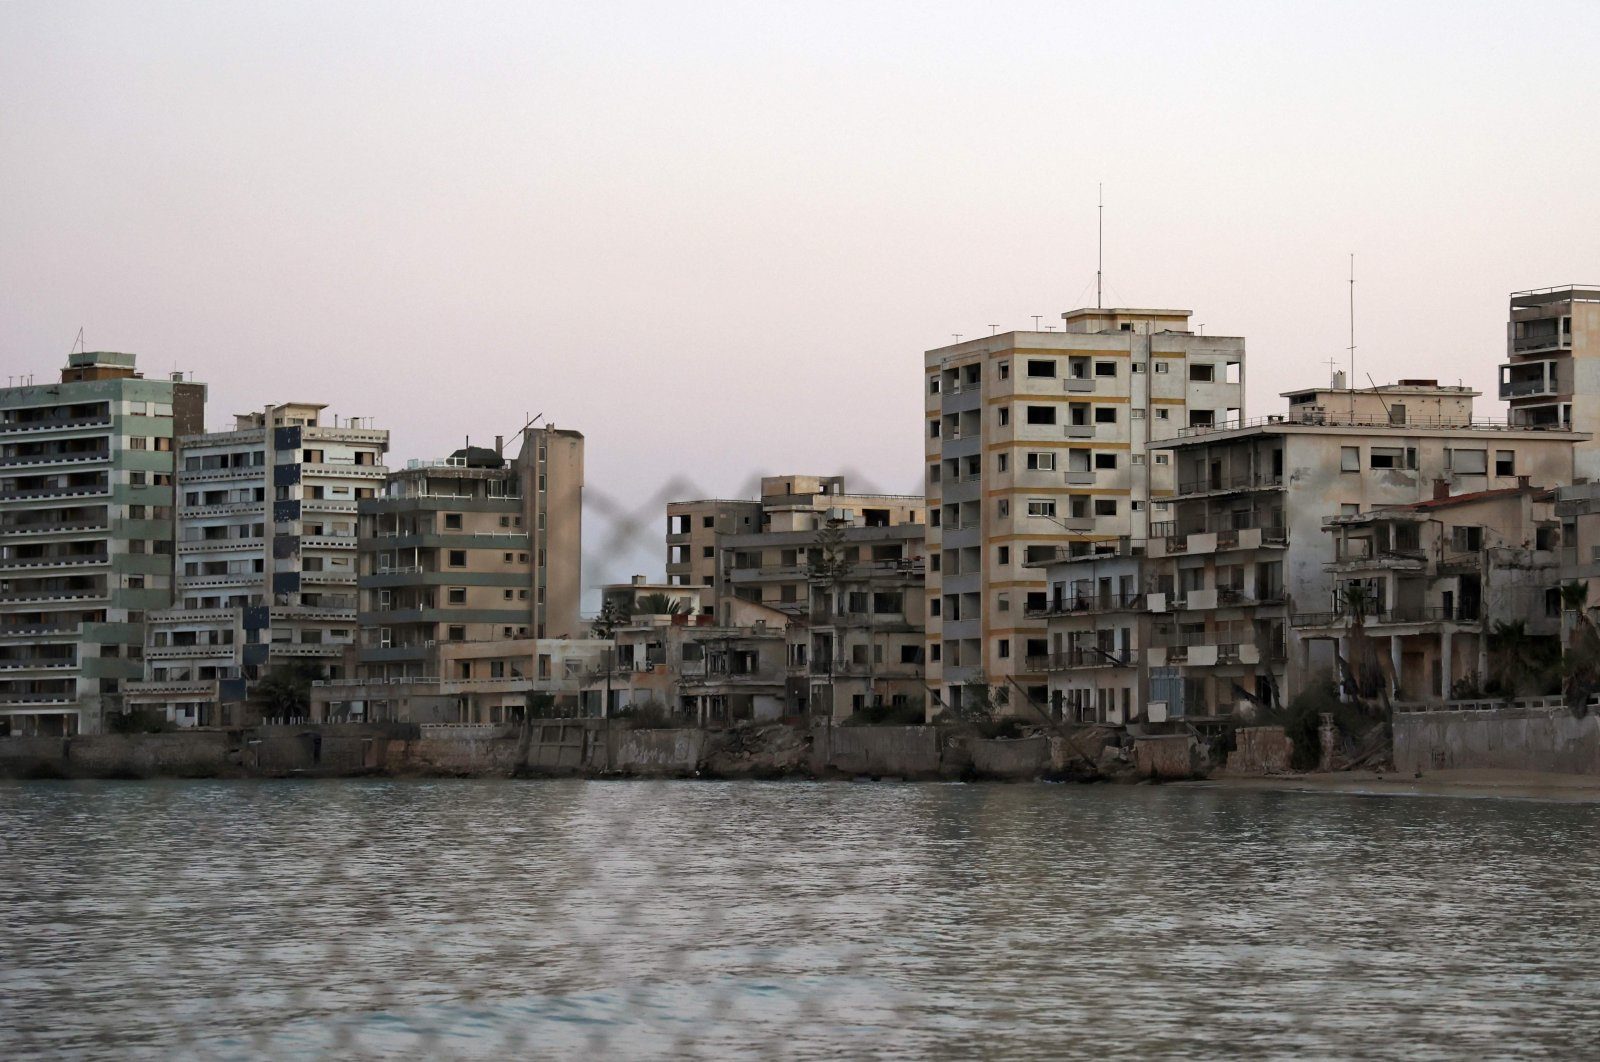 A view shows abandoned buildings and hotels in the fenced-off area of Varosha in the town of Famagusta in the Turkish Republic of Northern Cyprus (TRNC) of the divided Mediterranean island of Cyprus, July 16, 2021. (AFP Photo)